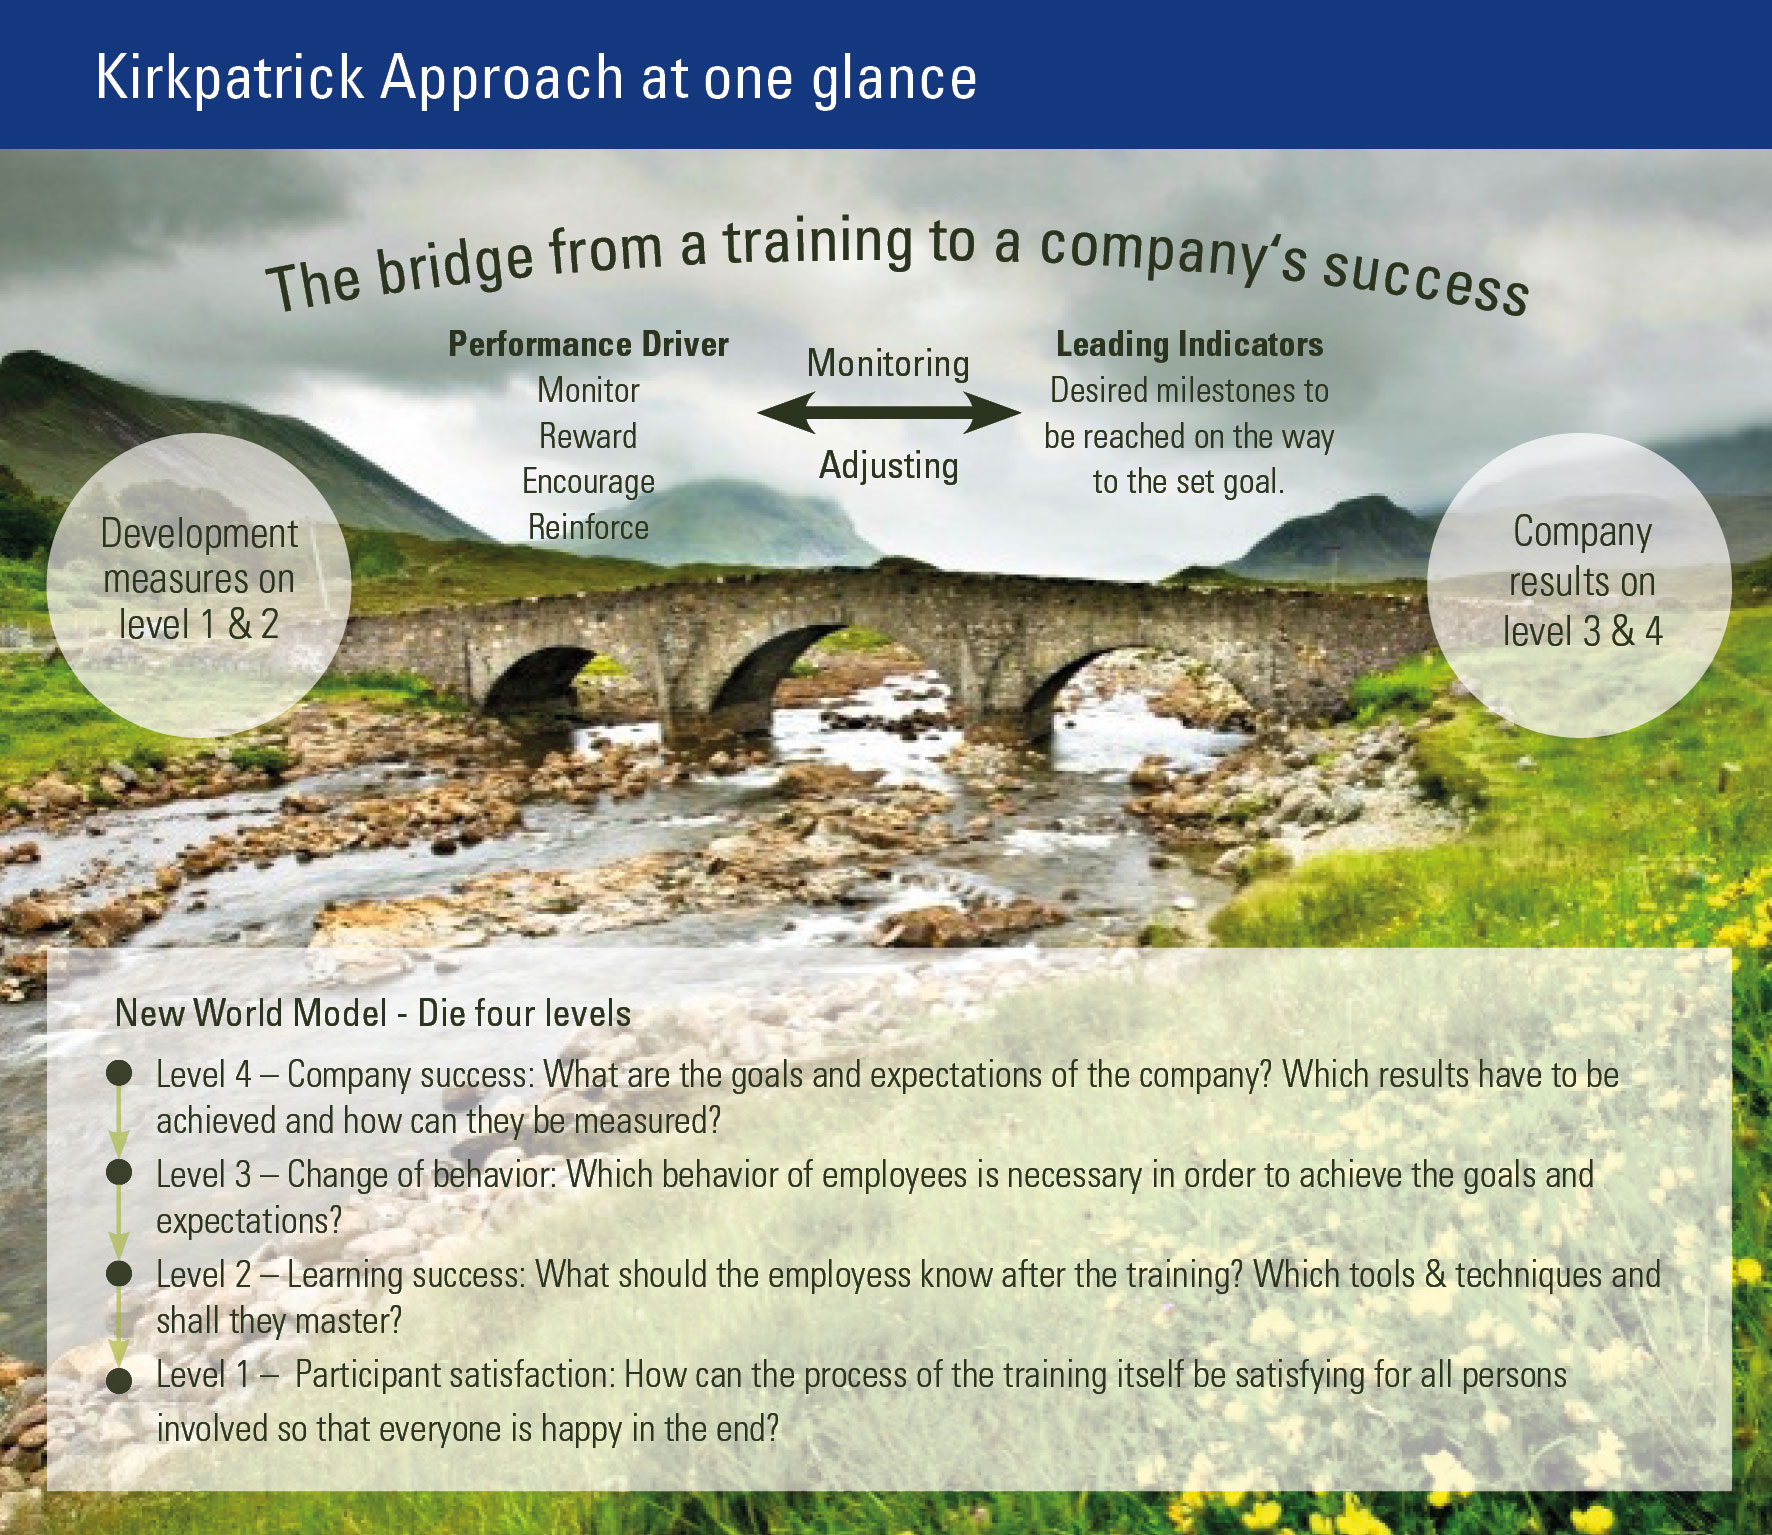 The Bridge from training to company results